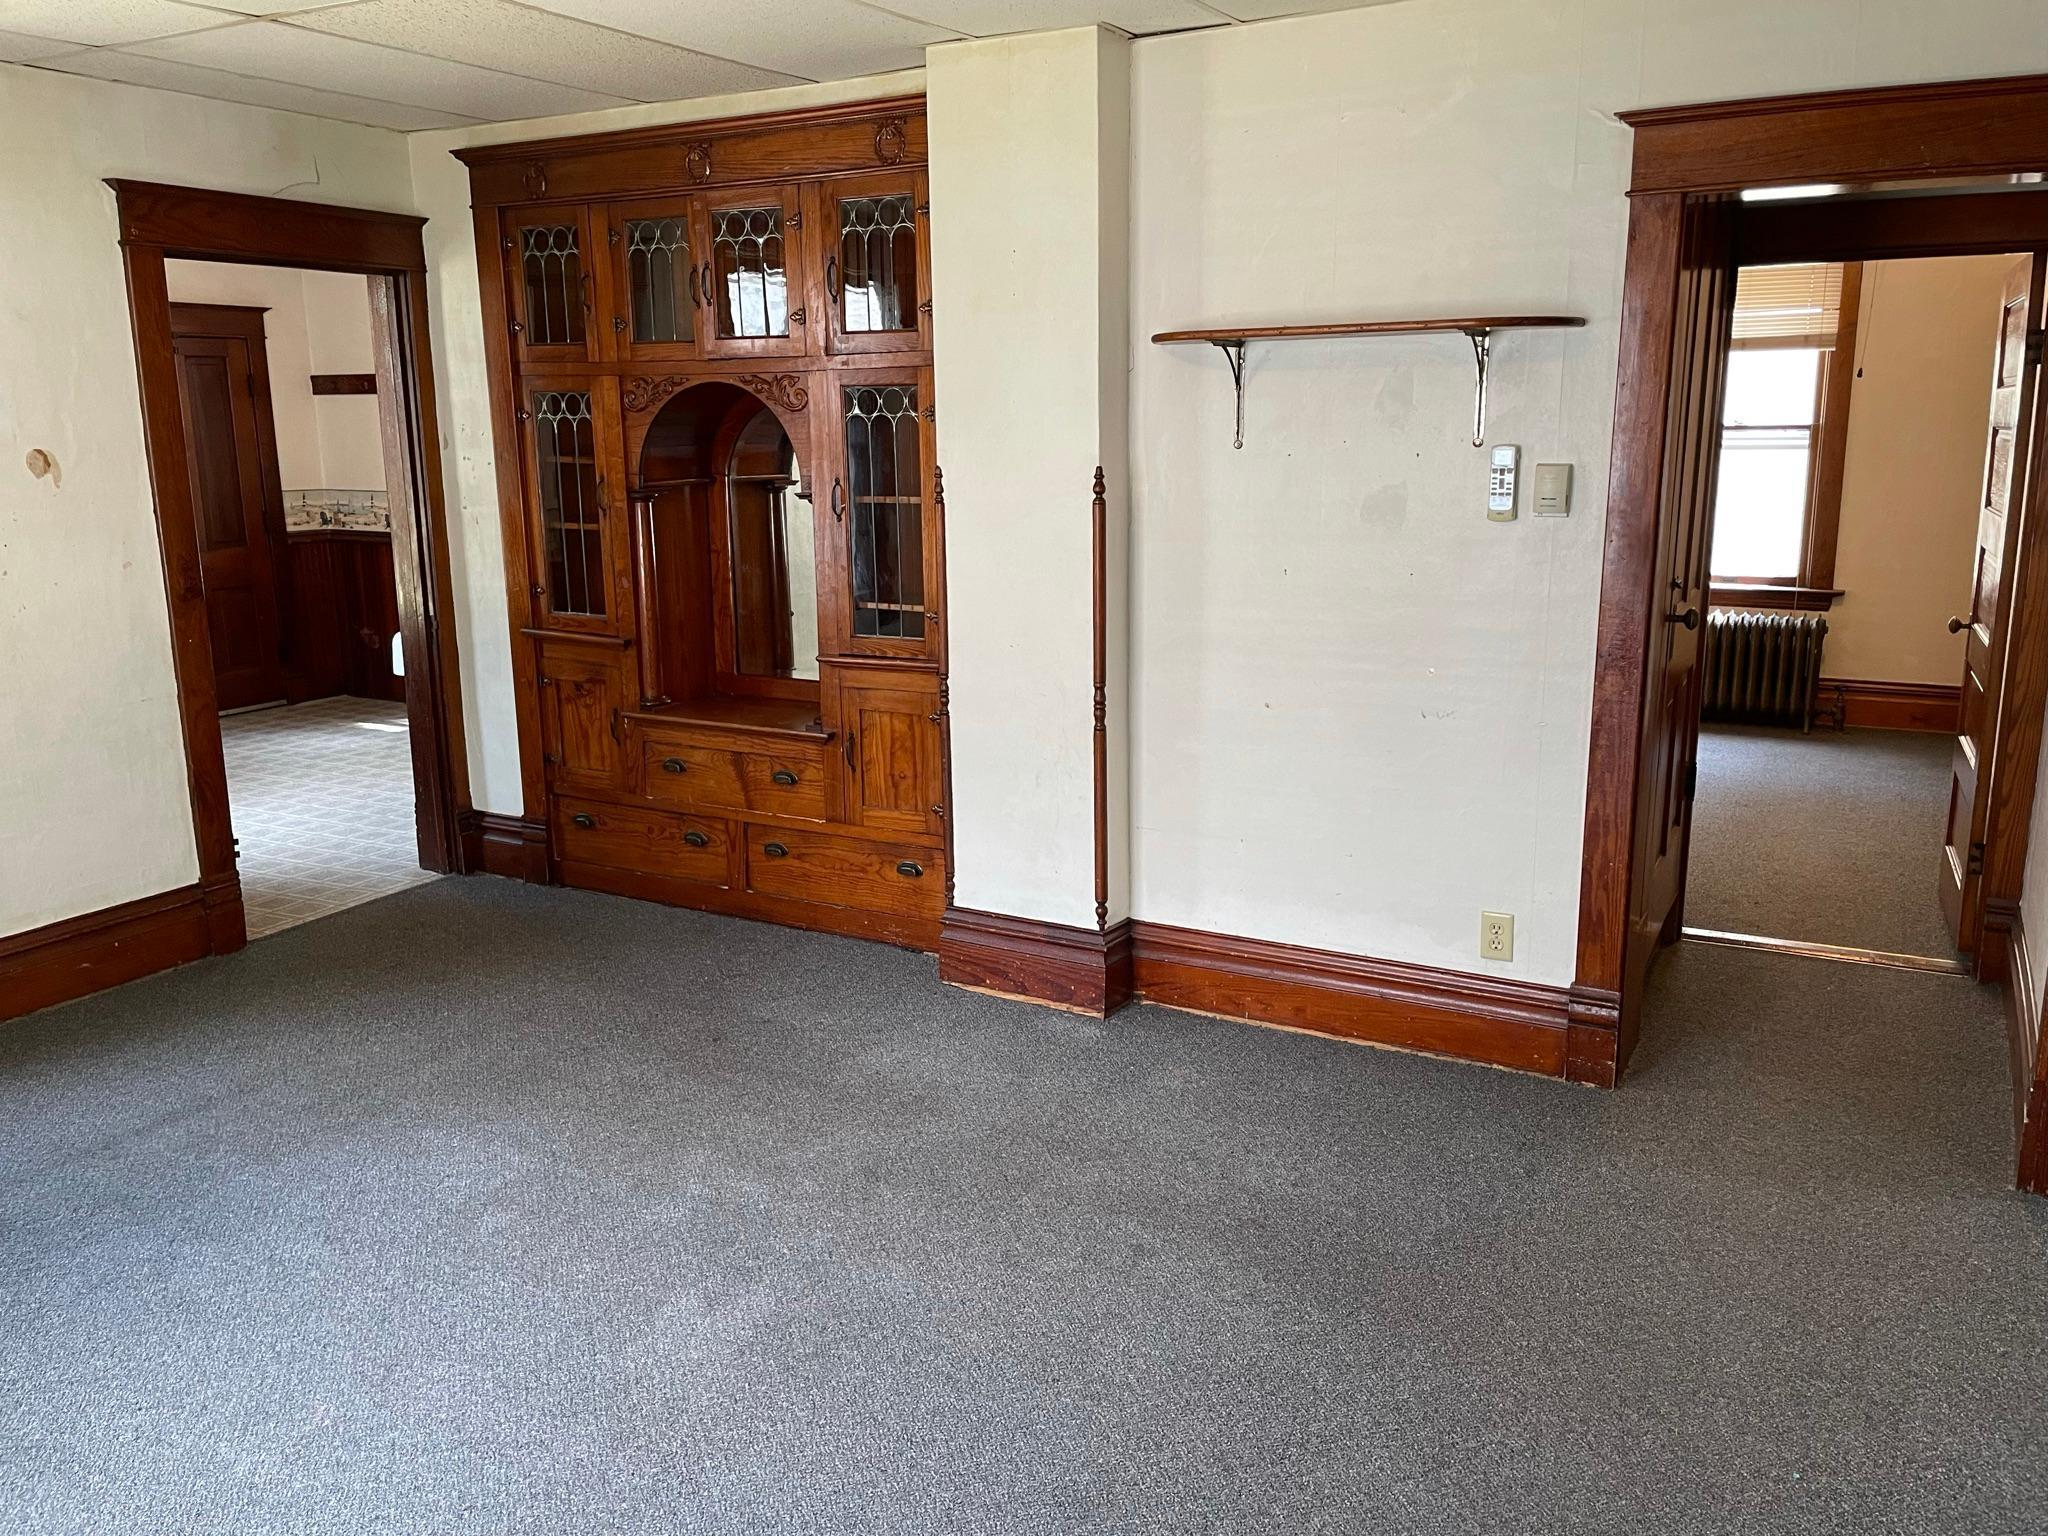 Multiple possibilities exist with this 2 bed, 2 bath classic Paynesville home! The property currently serves as an over/under rental and could continue to be used for this function. Additionally, a buyer could rent the upper level while living on the main floor or occupy the entire home. A third bedroom could be easily added by installing a door to the lower level sitting room. The property also features a detached single garage with additional space for storage. Come take a look!